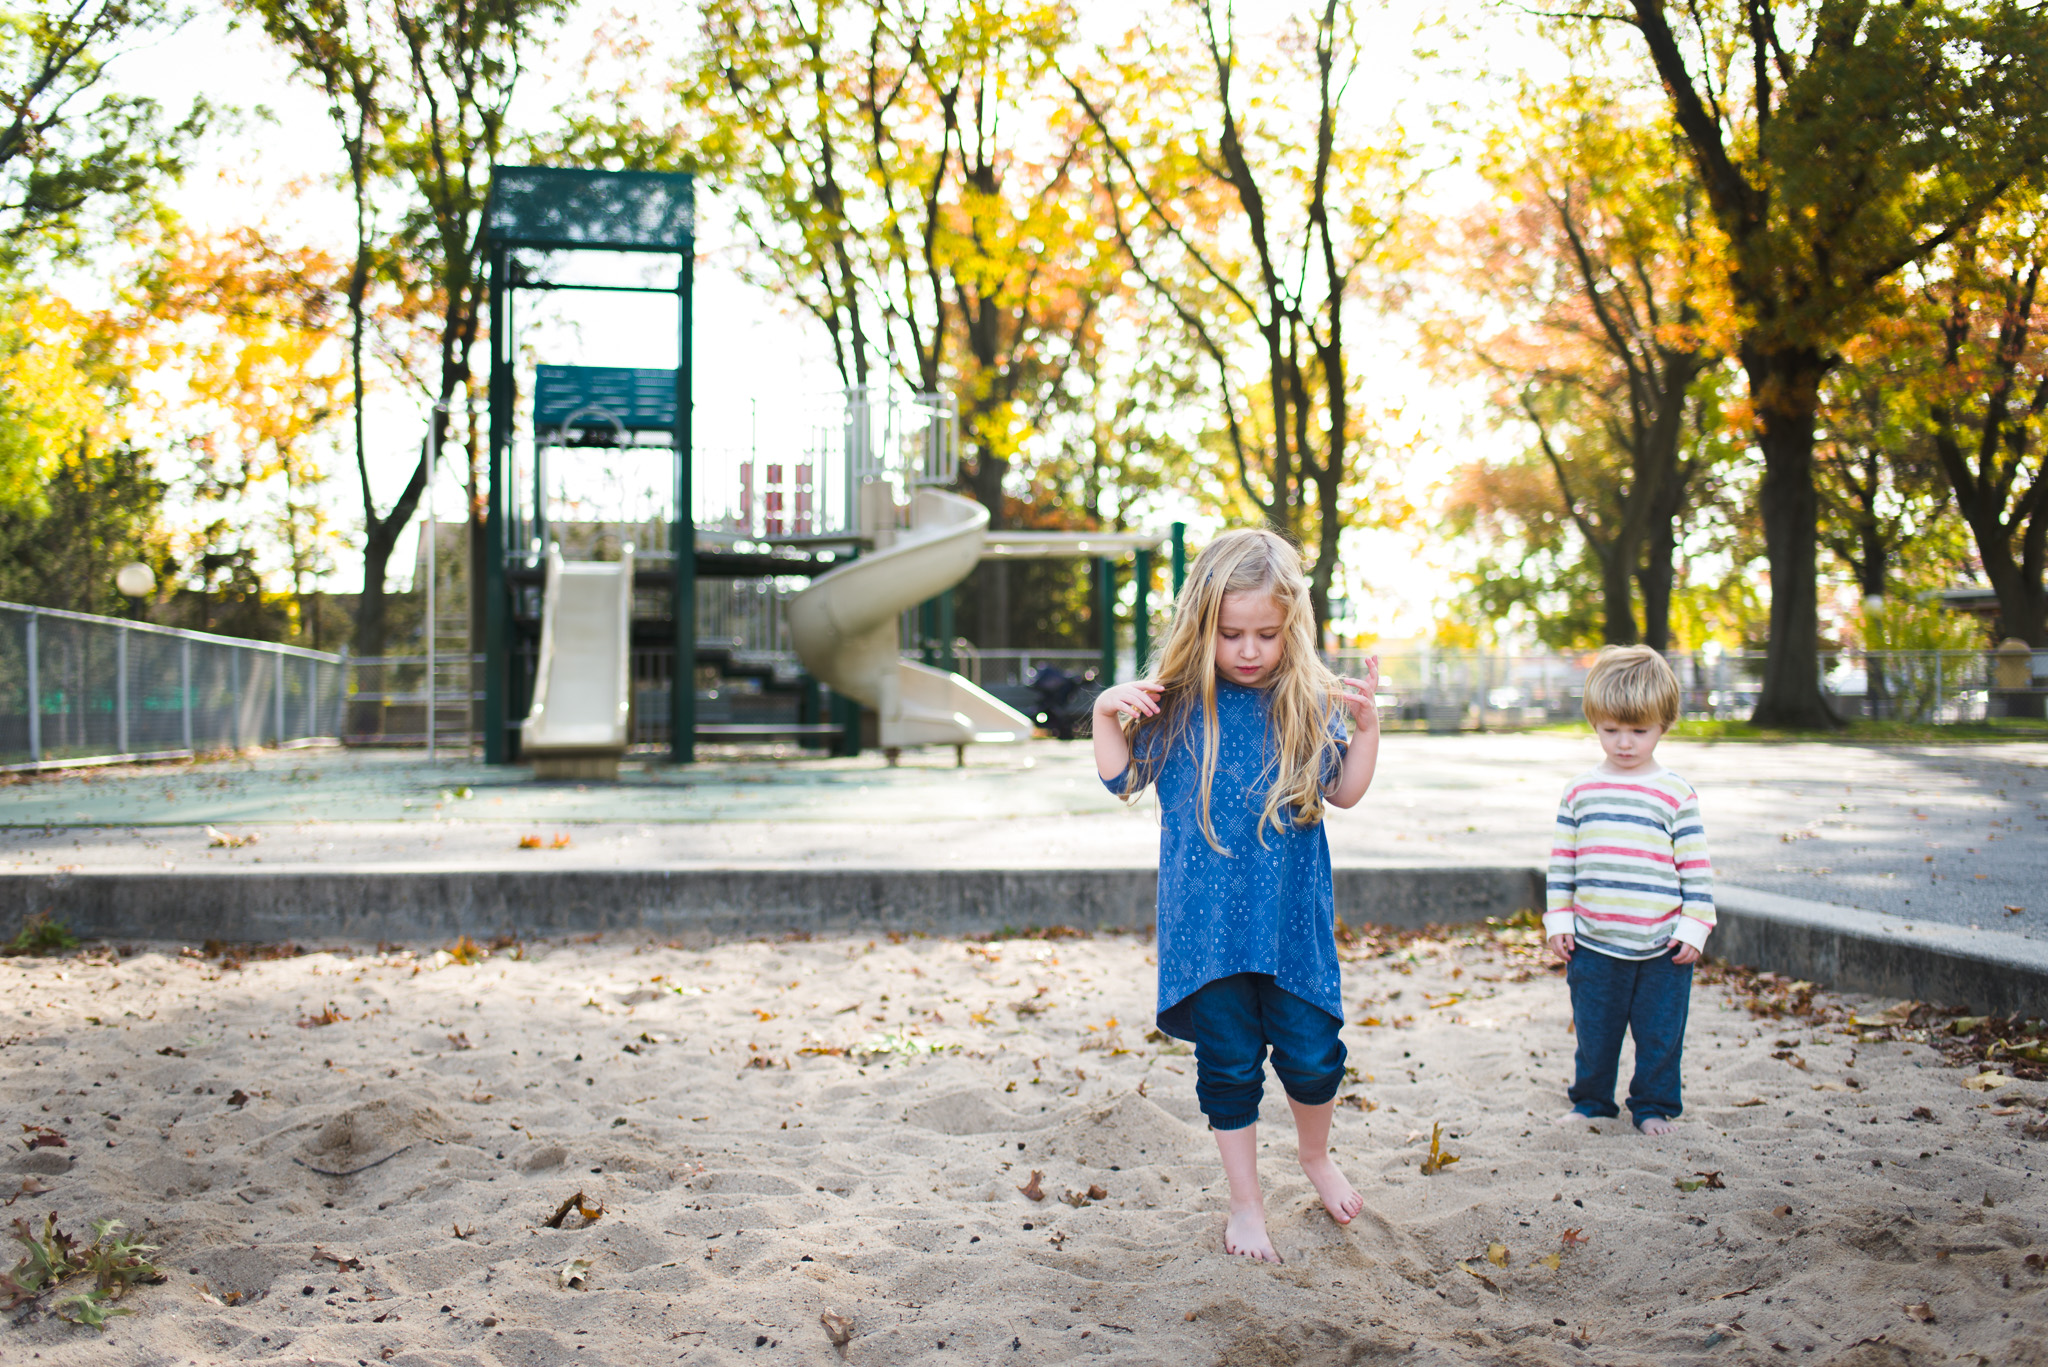 An unusually warm day at the playground.